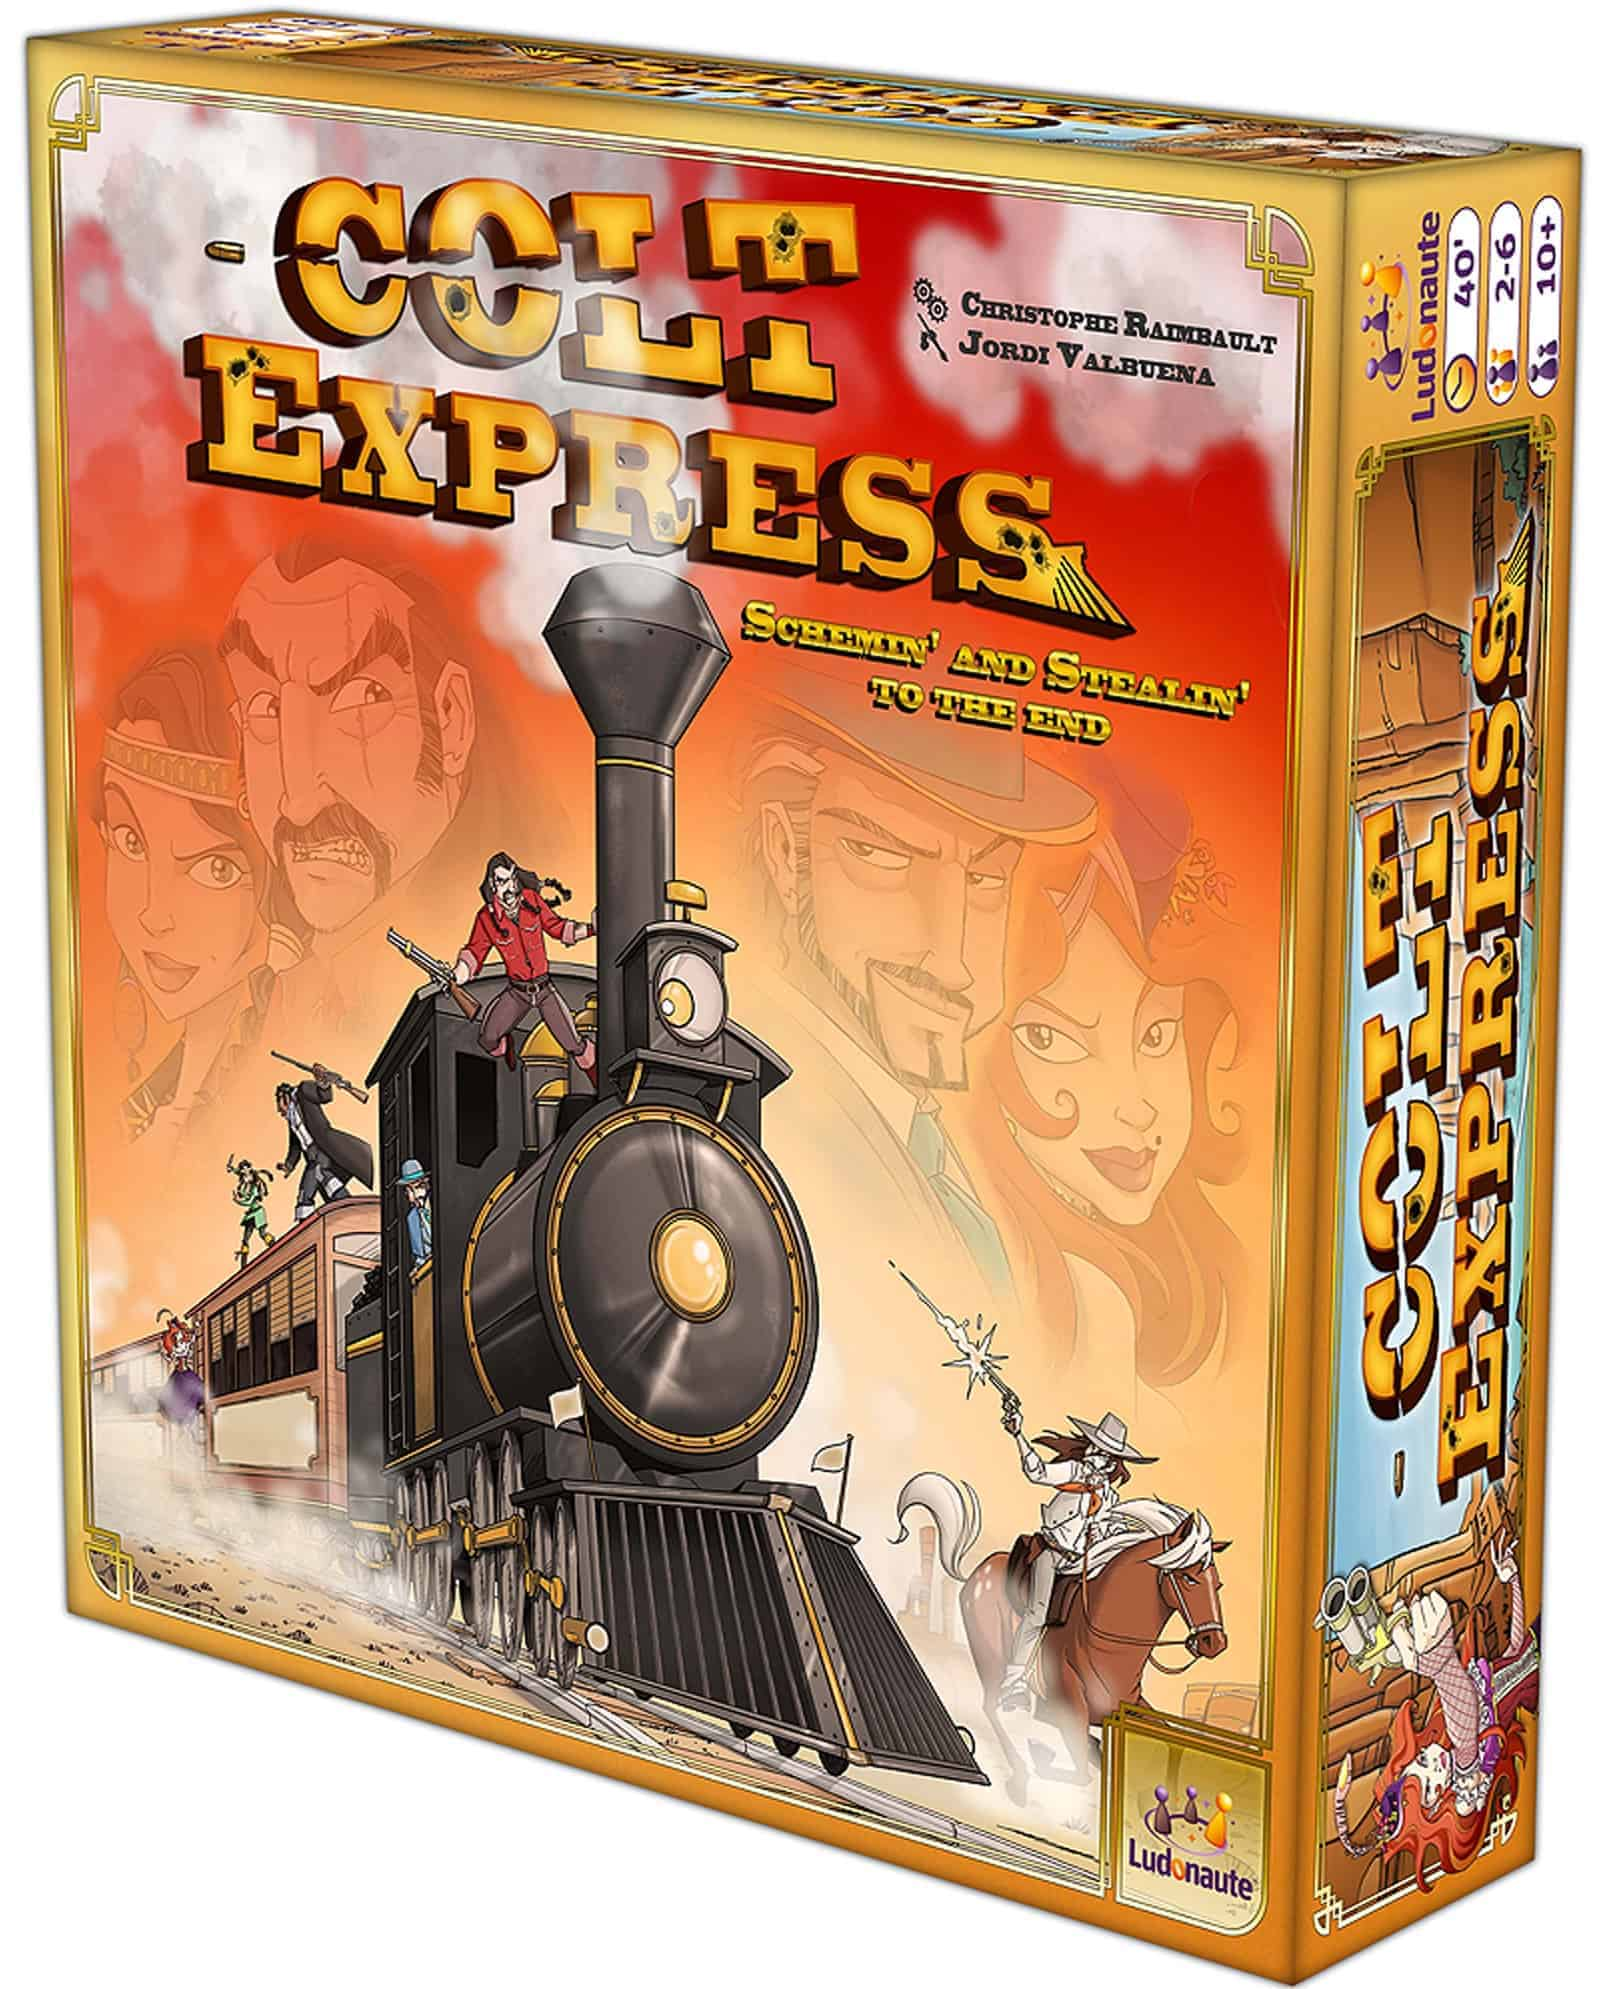 Colt Express is easy and extremely accessible, one of the best board games for family with kids.